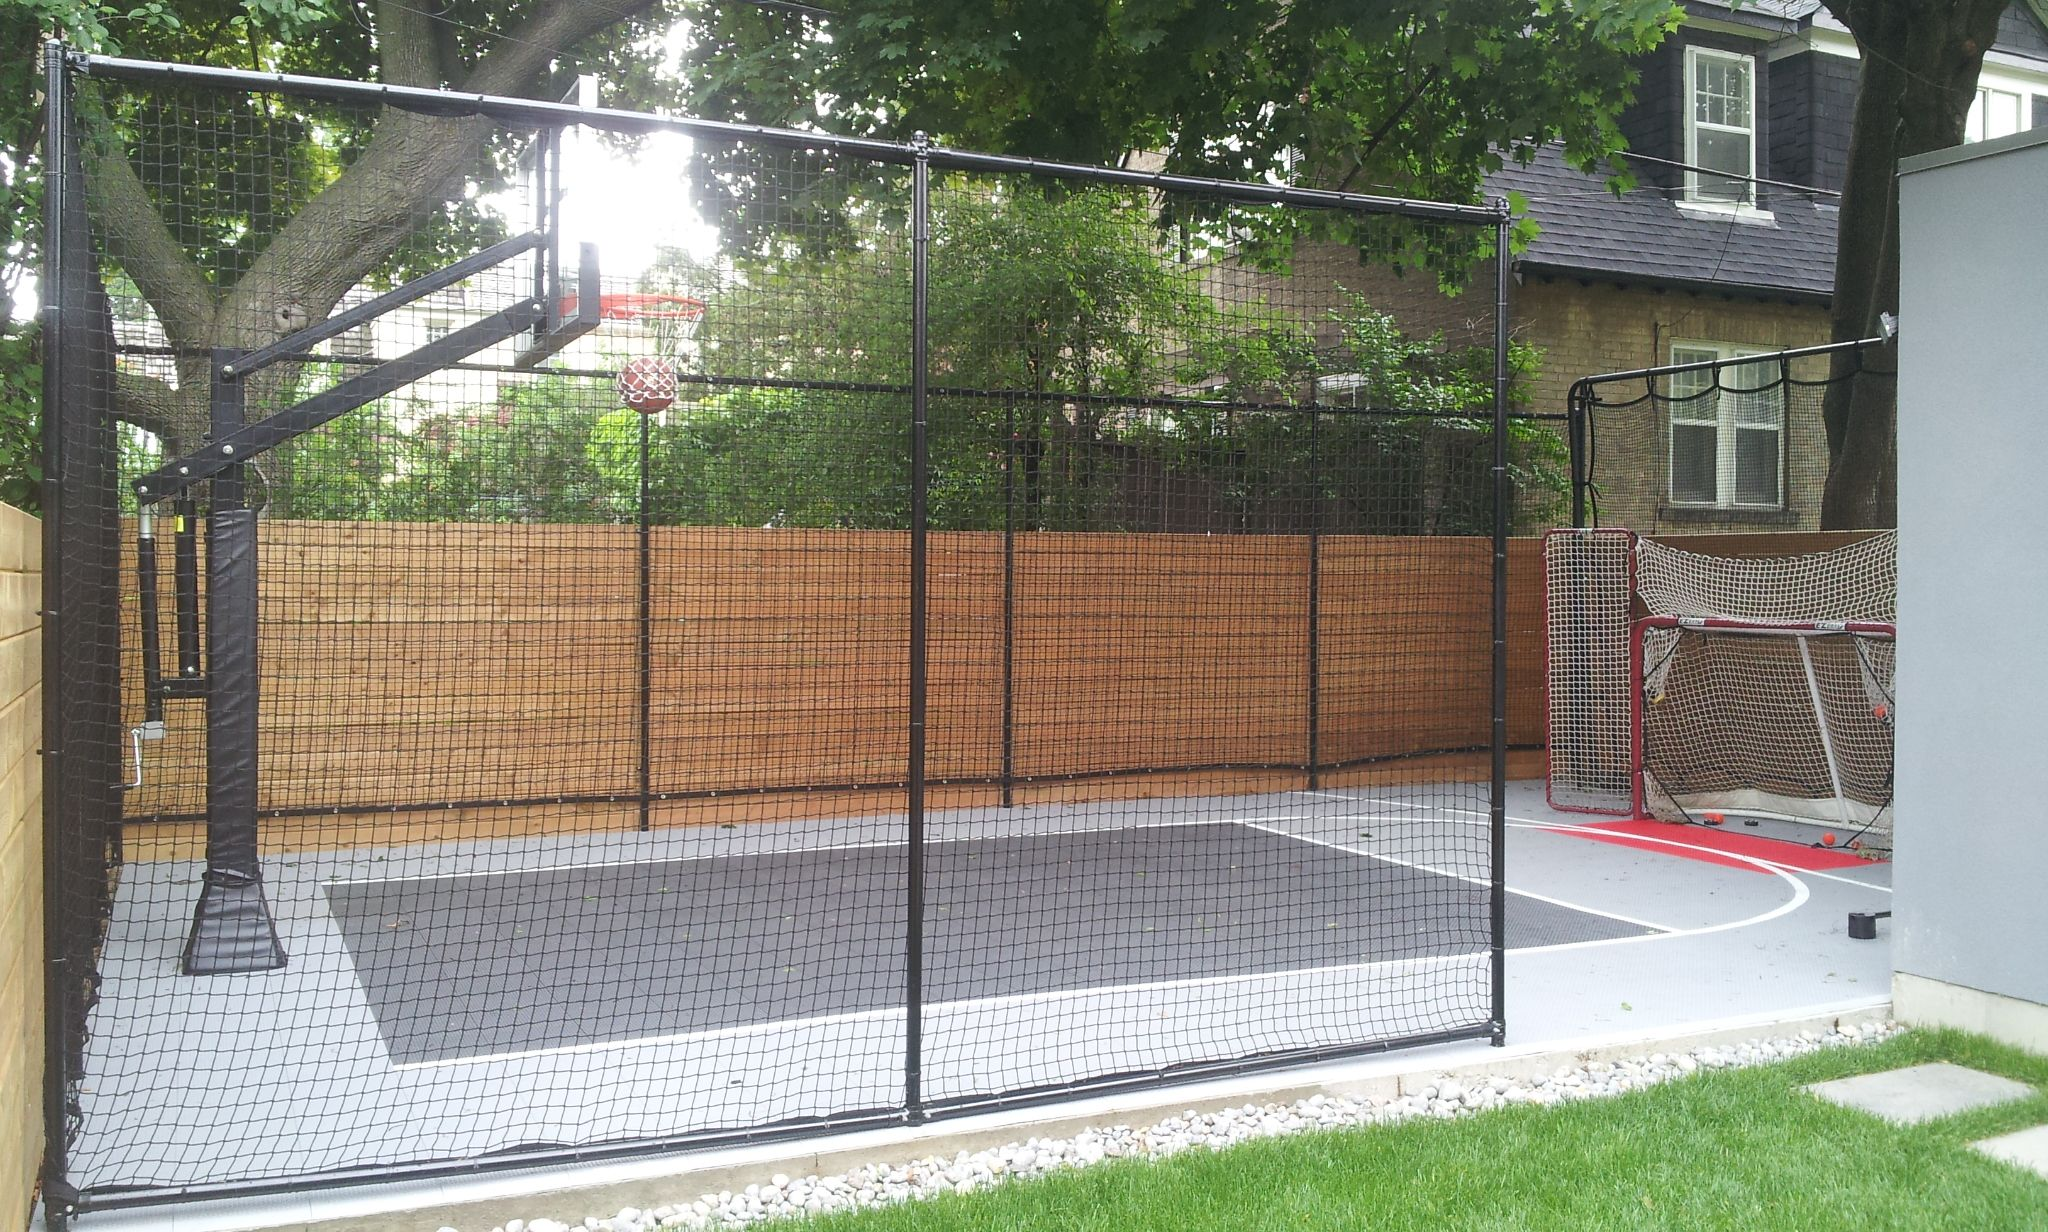 small side yard basketball court w boxwood and net barriers